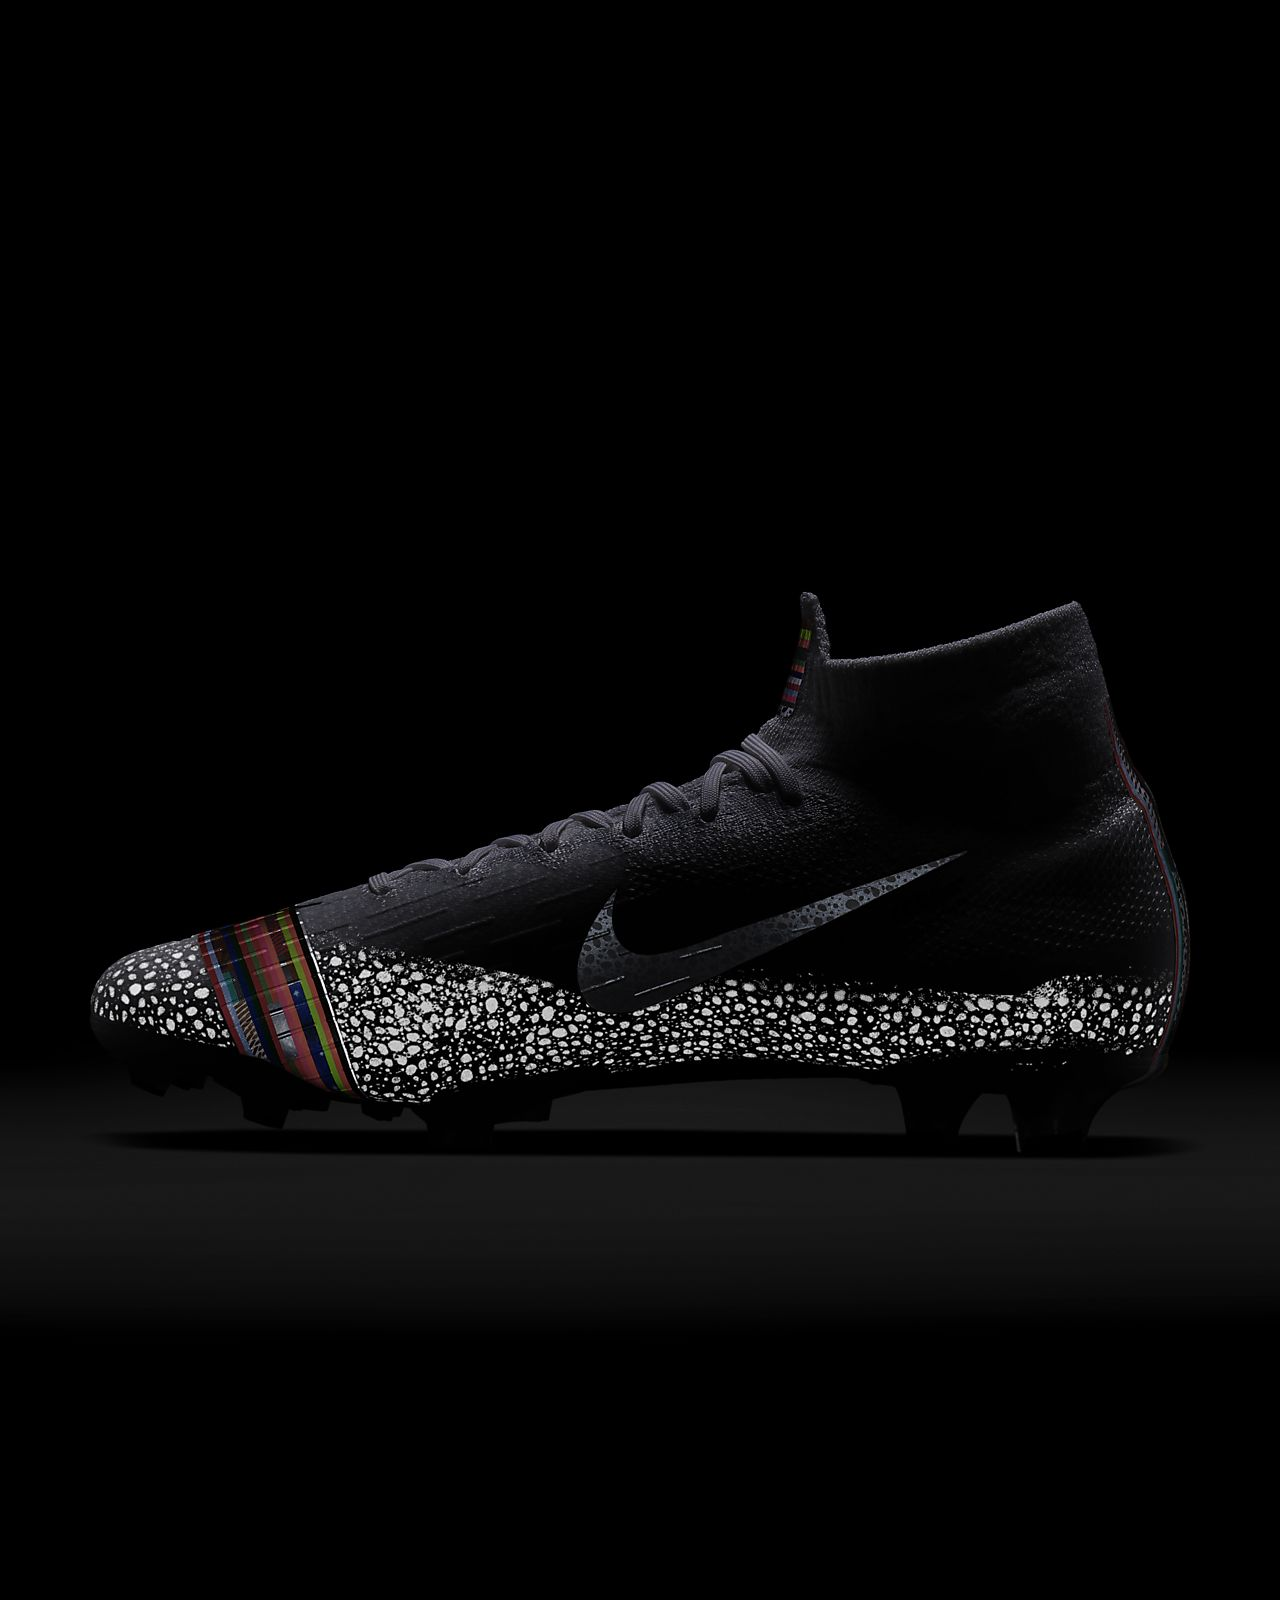 san francisco 7968b 15b87 Nike Mercurial Superfly 360 Elite SE FG LVL UP - Pure ...